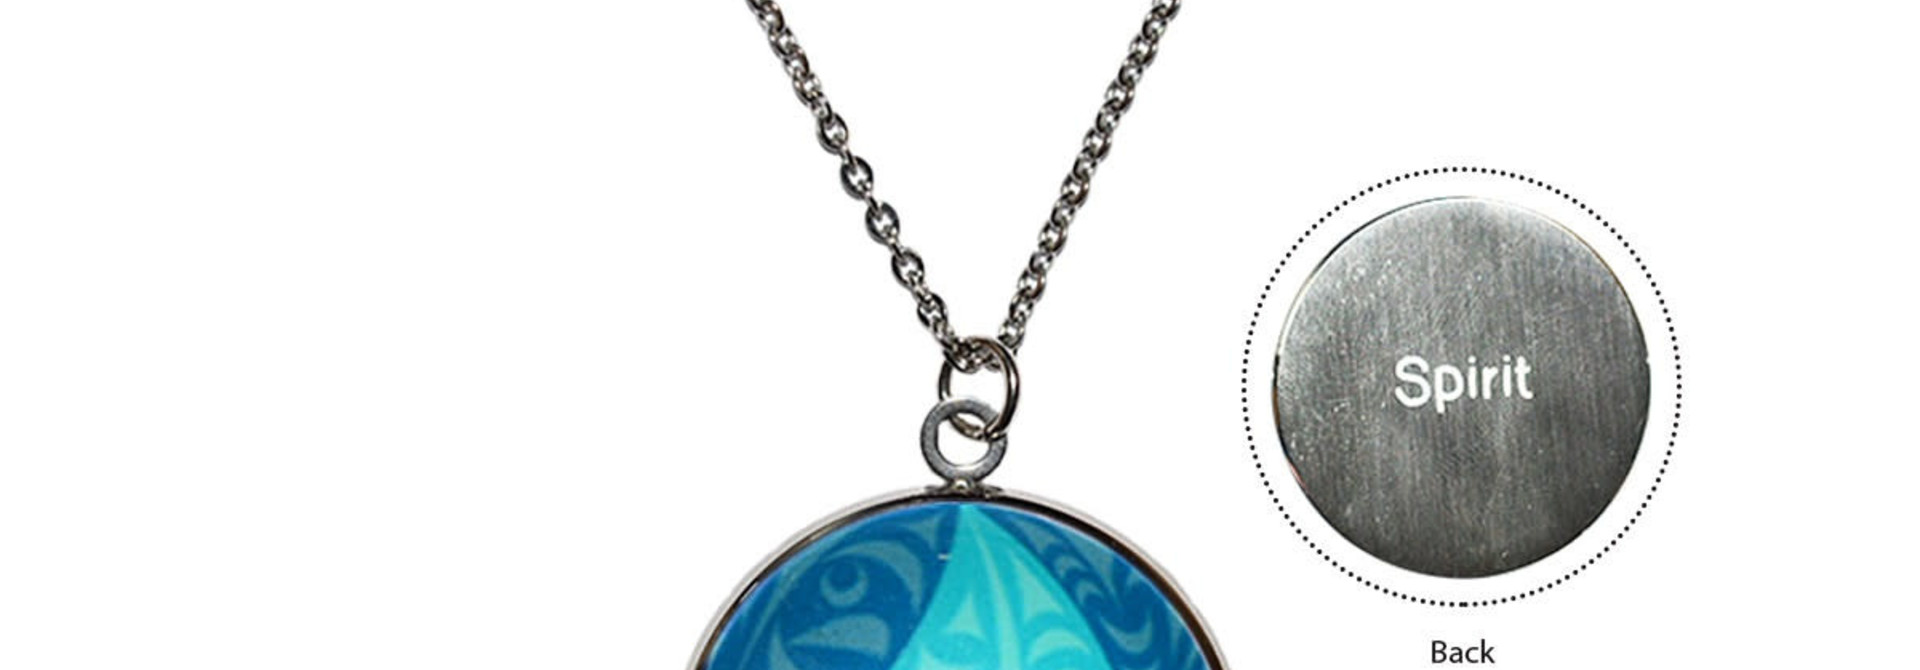 Circle Charm Necklace- Eco Spirit by Dylan Thomas